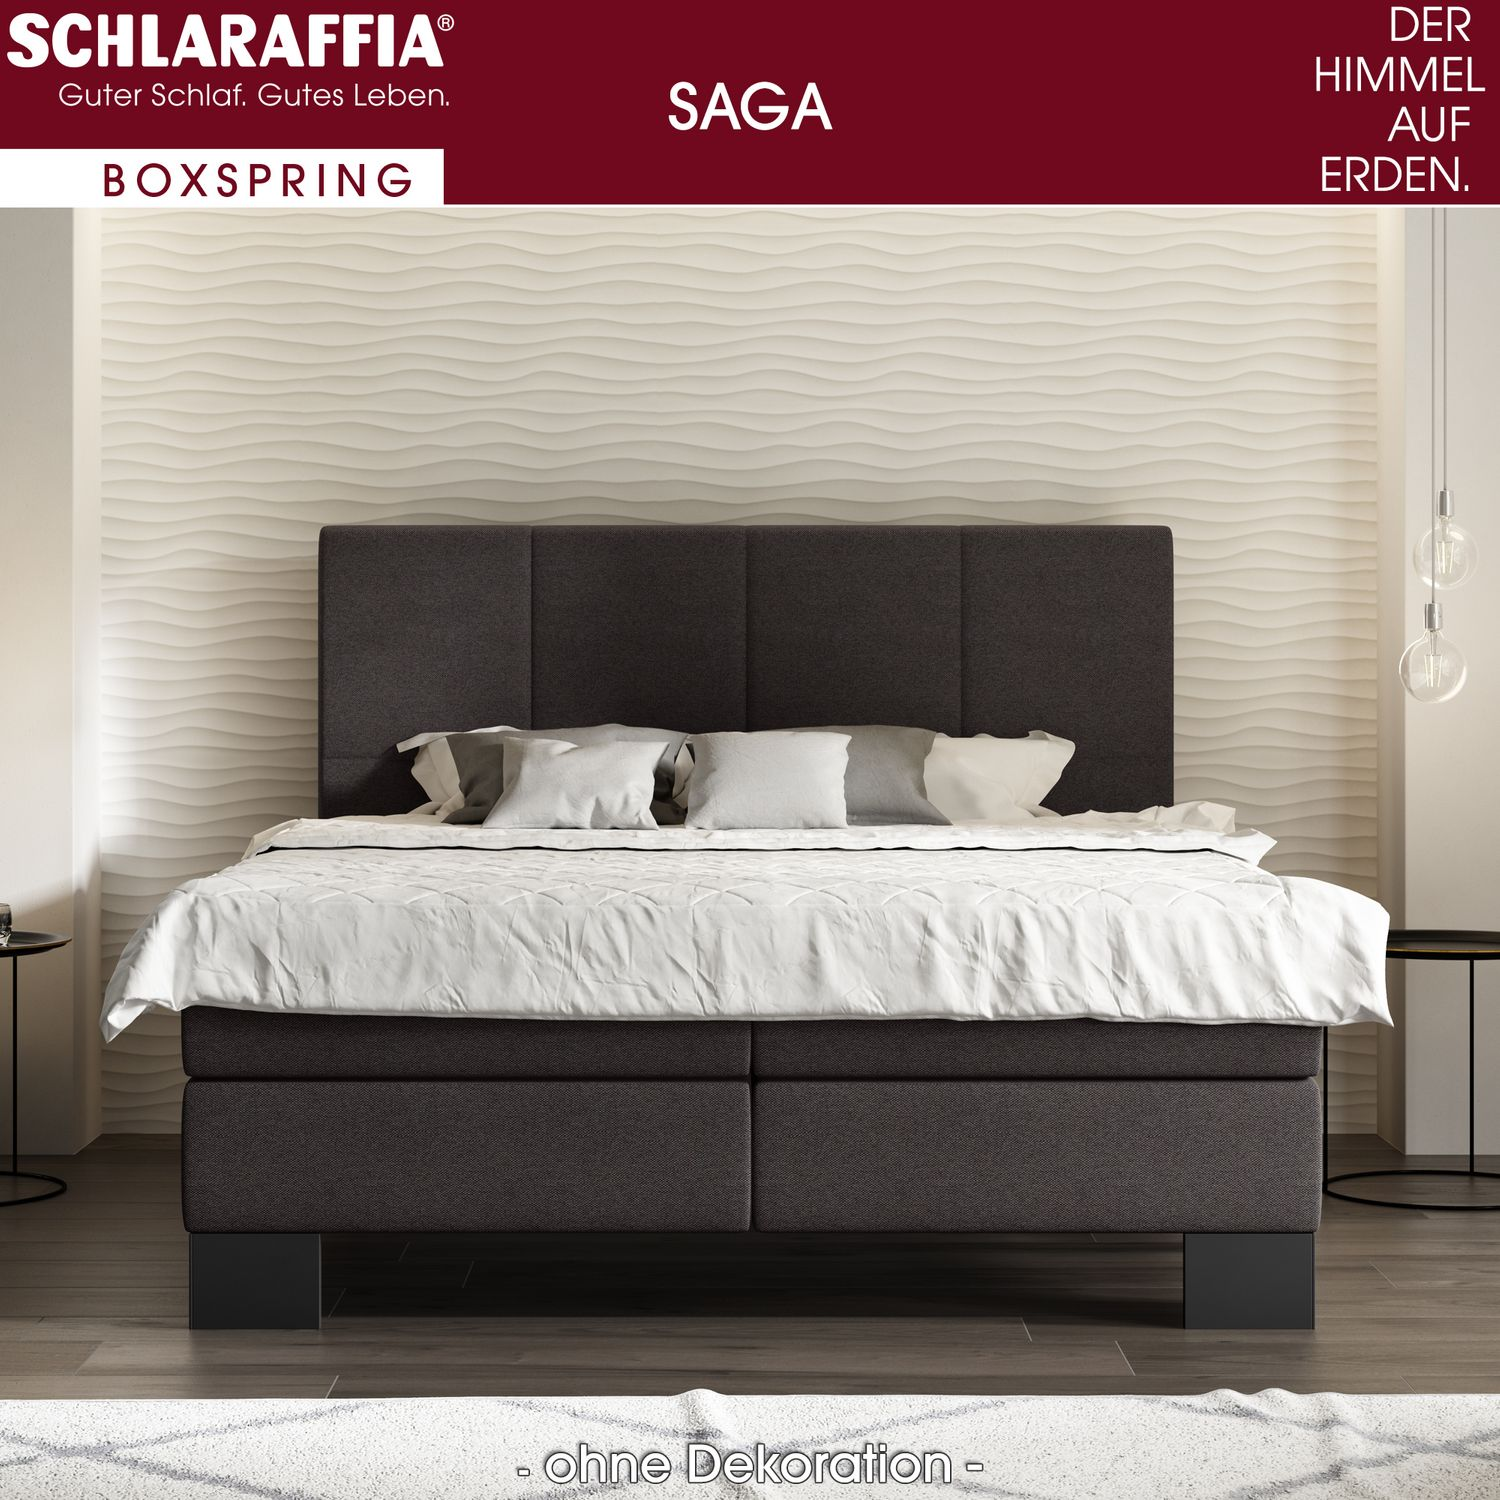 schlaraffia saga box cubic boxspringbett 180x220 cm boxspringbetten sondergr en 180 x 220 cm. Black Bedroom Furniture Sets. Home Design Ideas